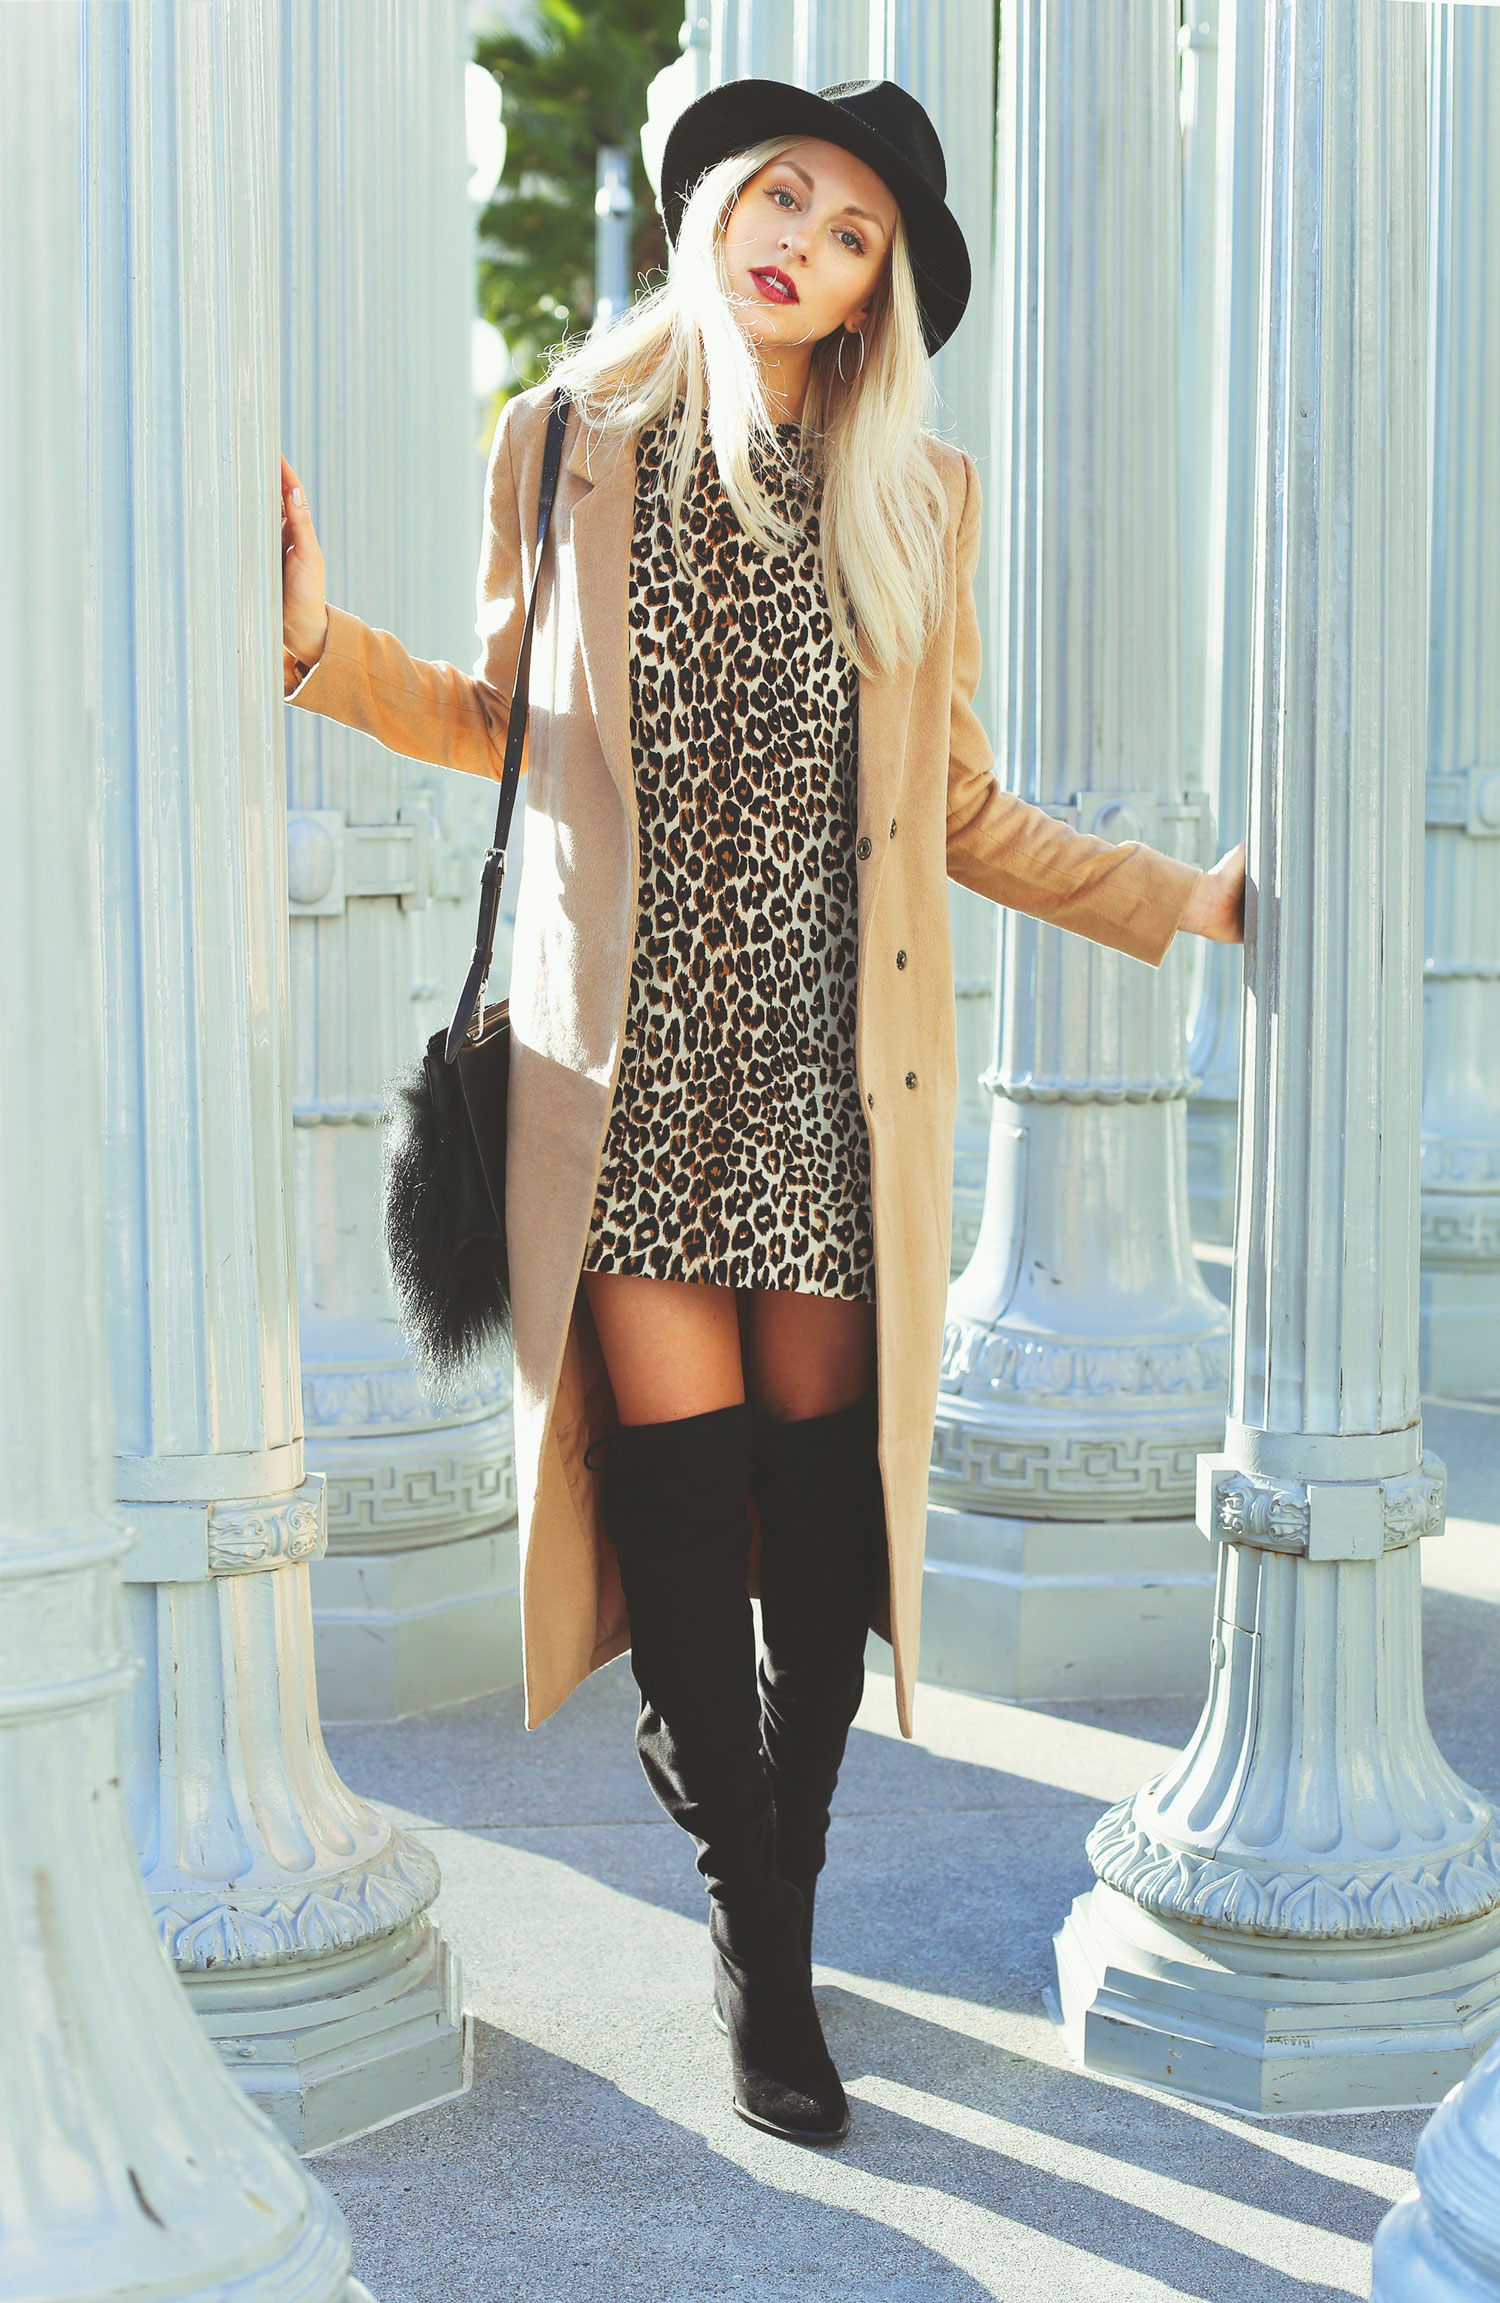 Shea Marie is wearing a long camel coat from Forever 21